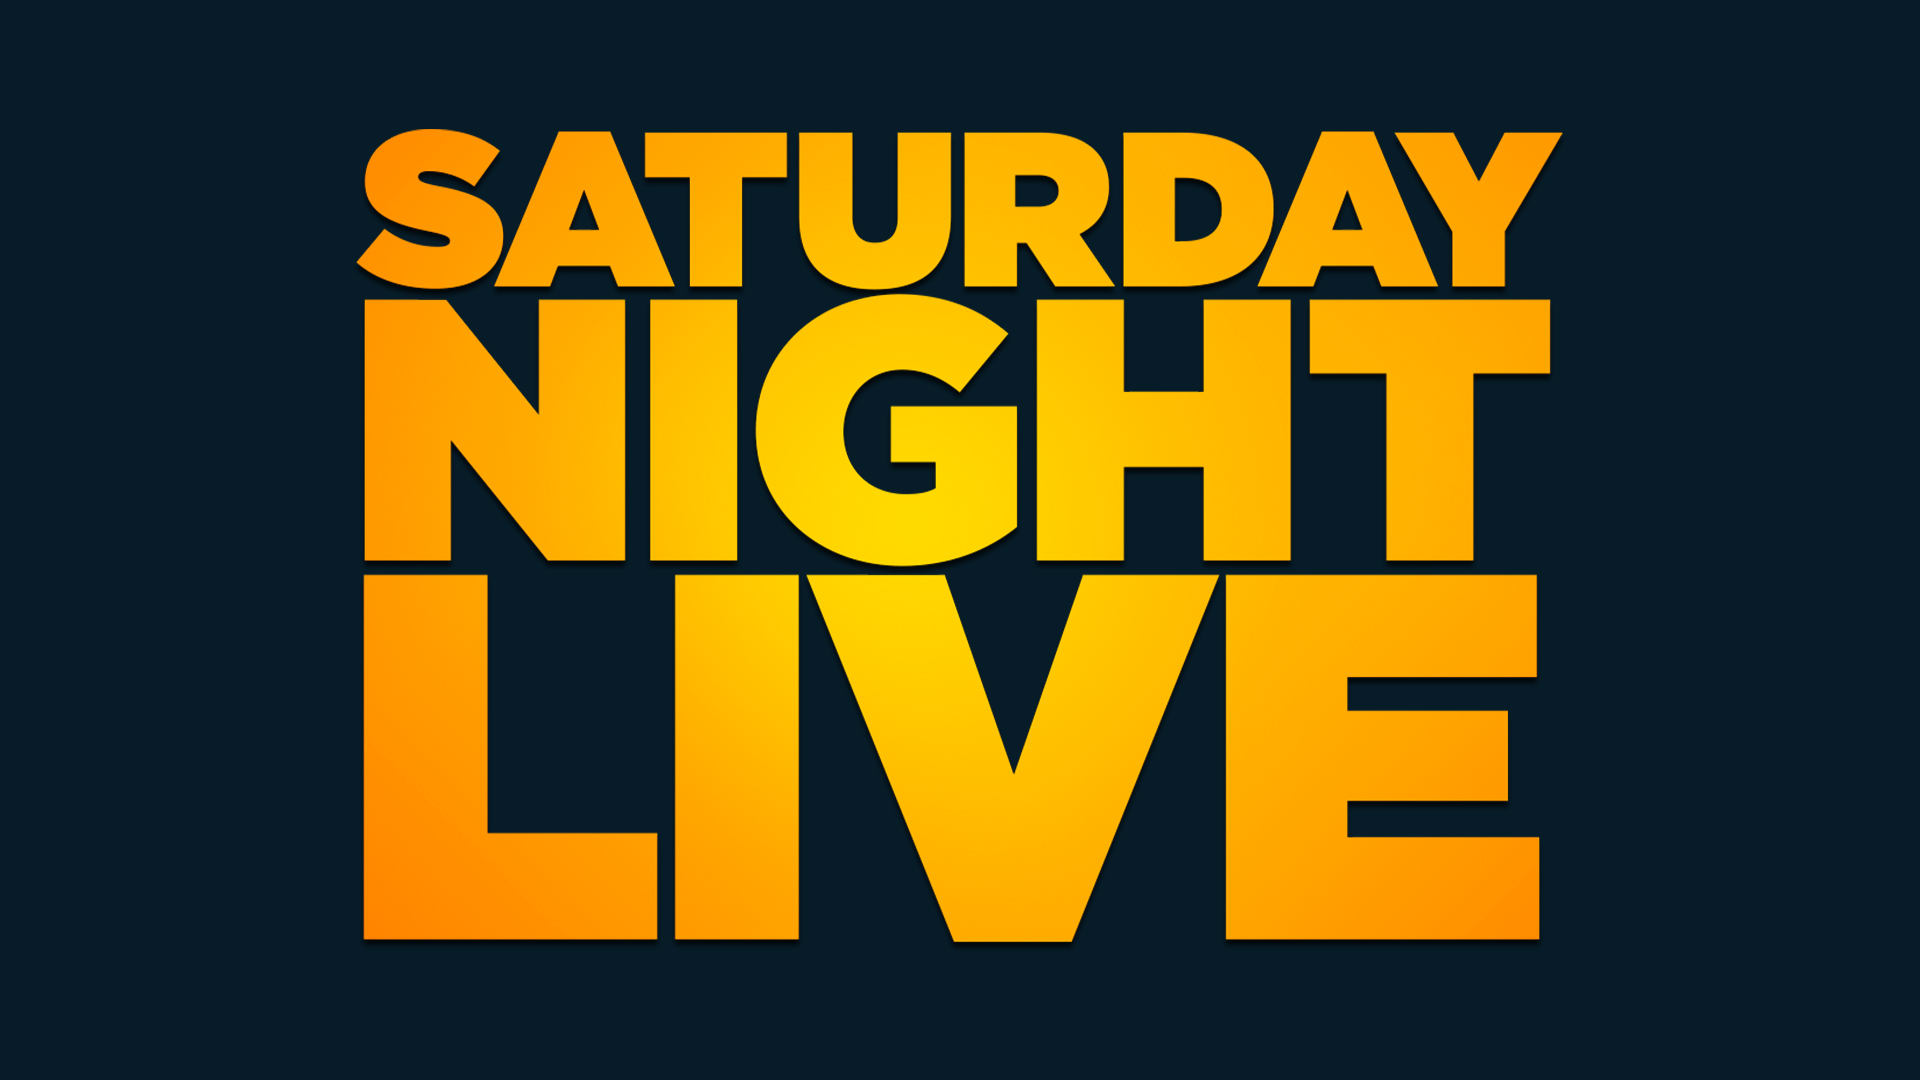 saturday night live turns 40 6 things you can expect from the